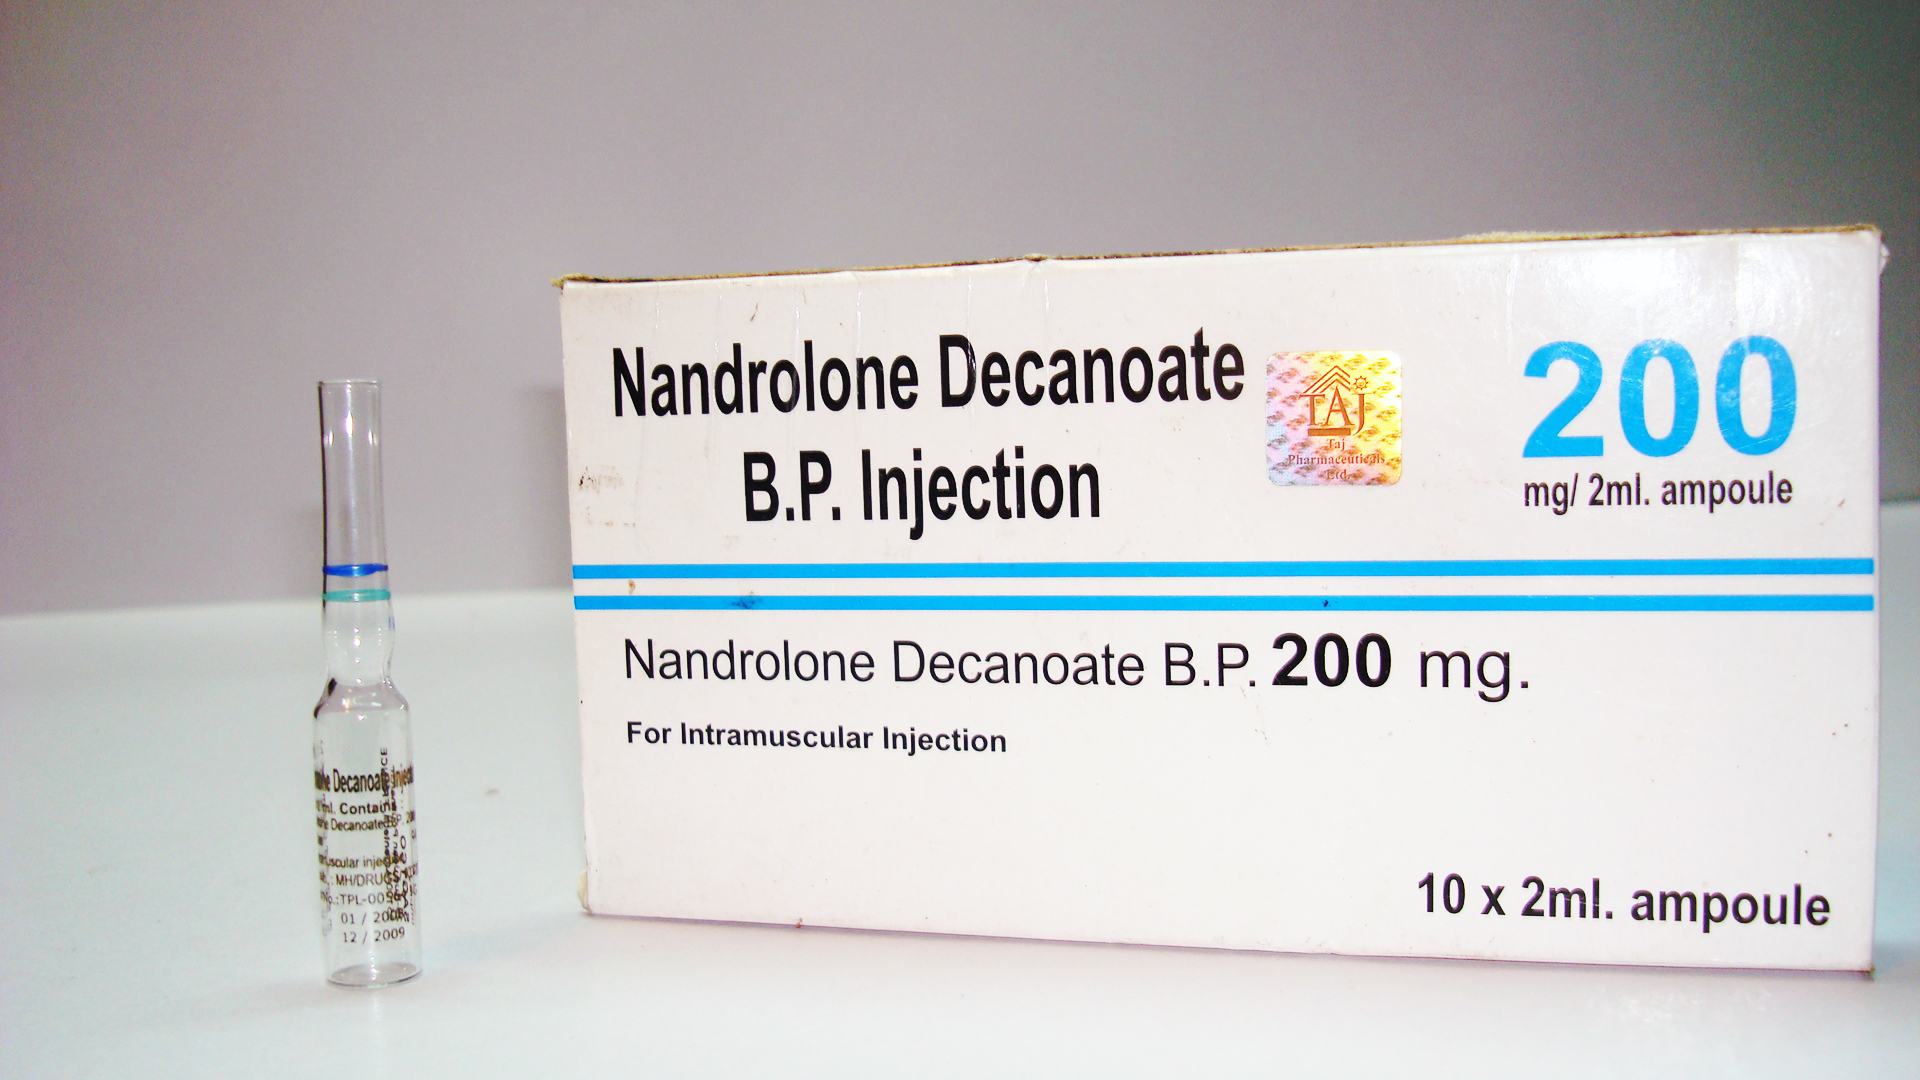 nandrolone decanoate chemical name